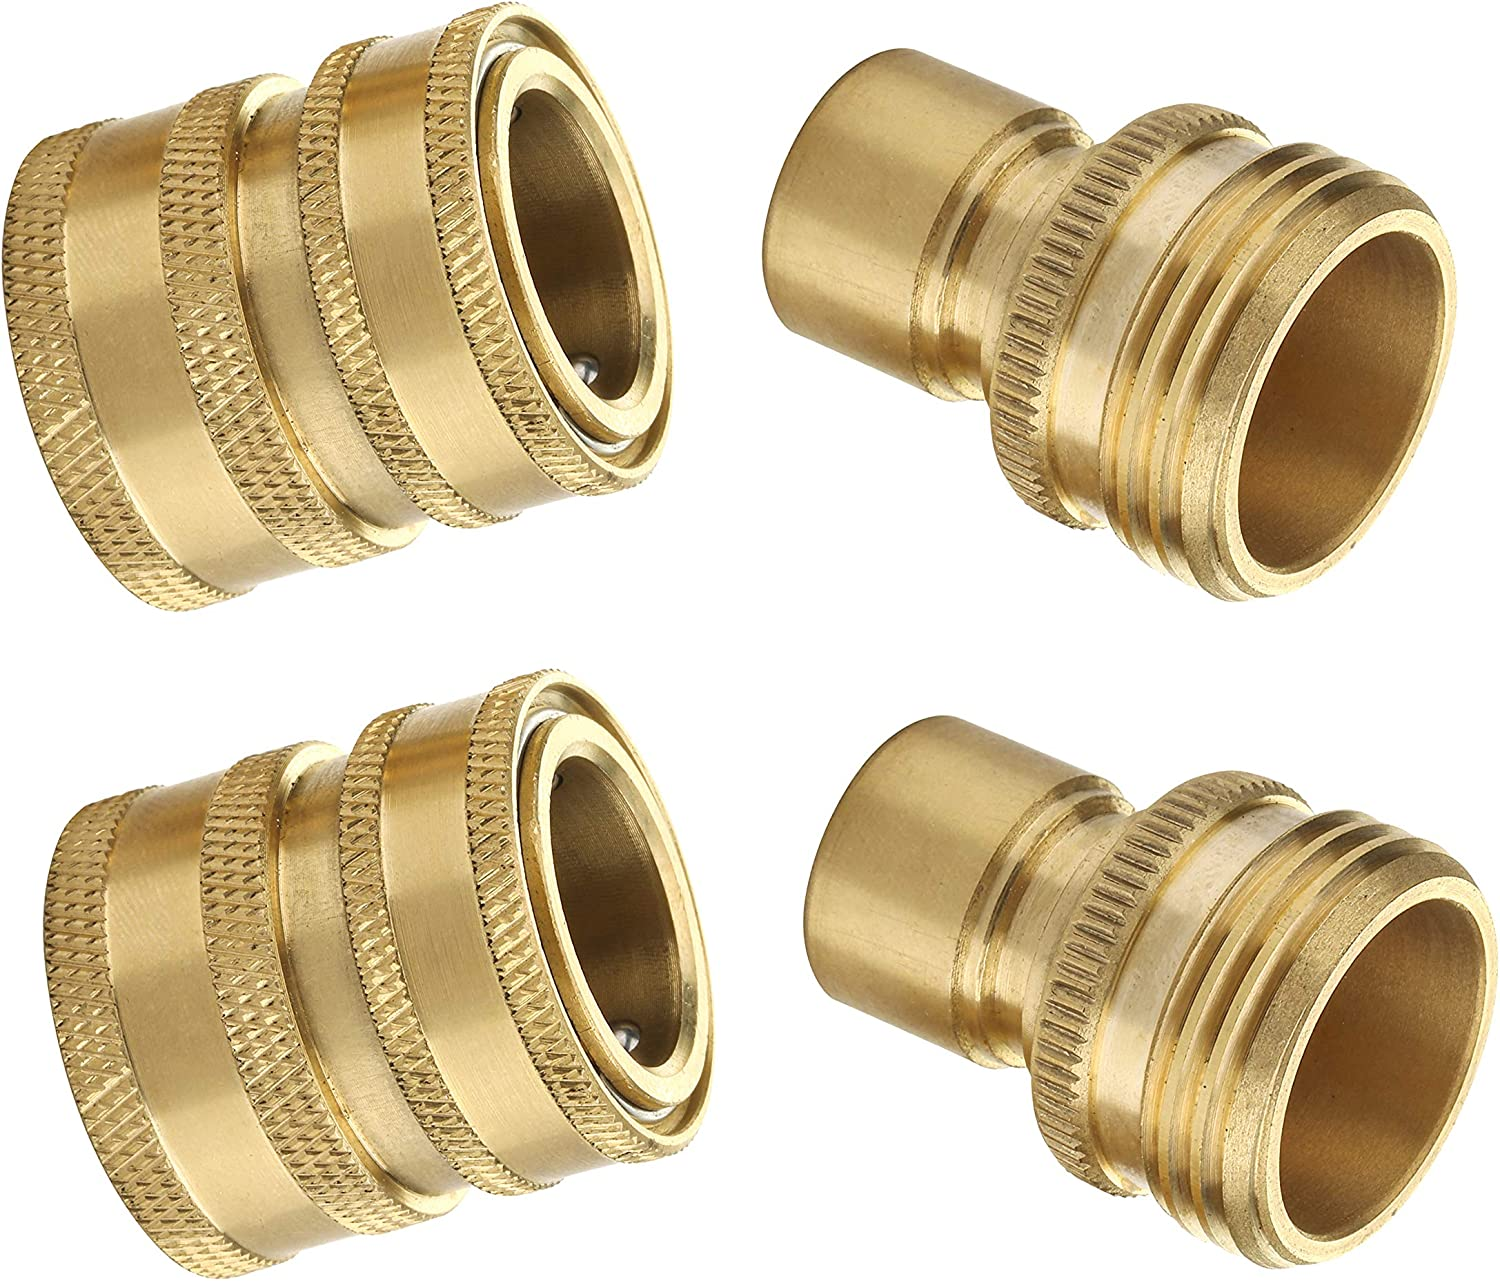 M MINGLE Garden Hose Quick Connect Fittings, 3/4 Inch GHT Solid Brass, Quick Connector Set, 2-Pack